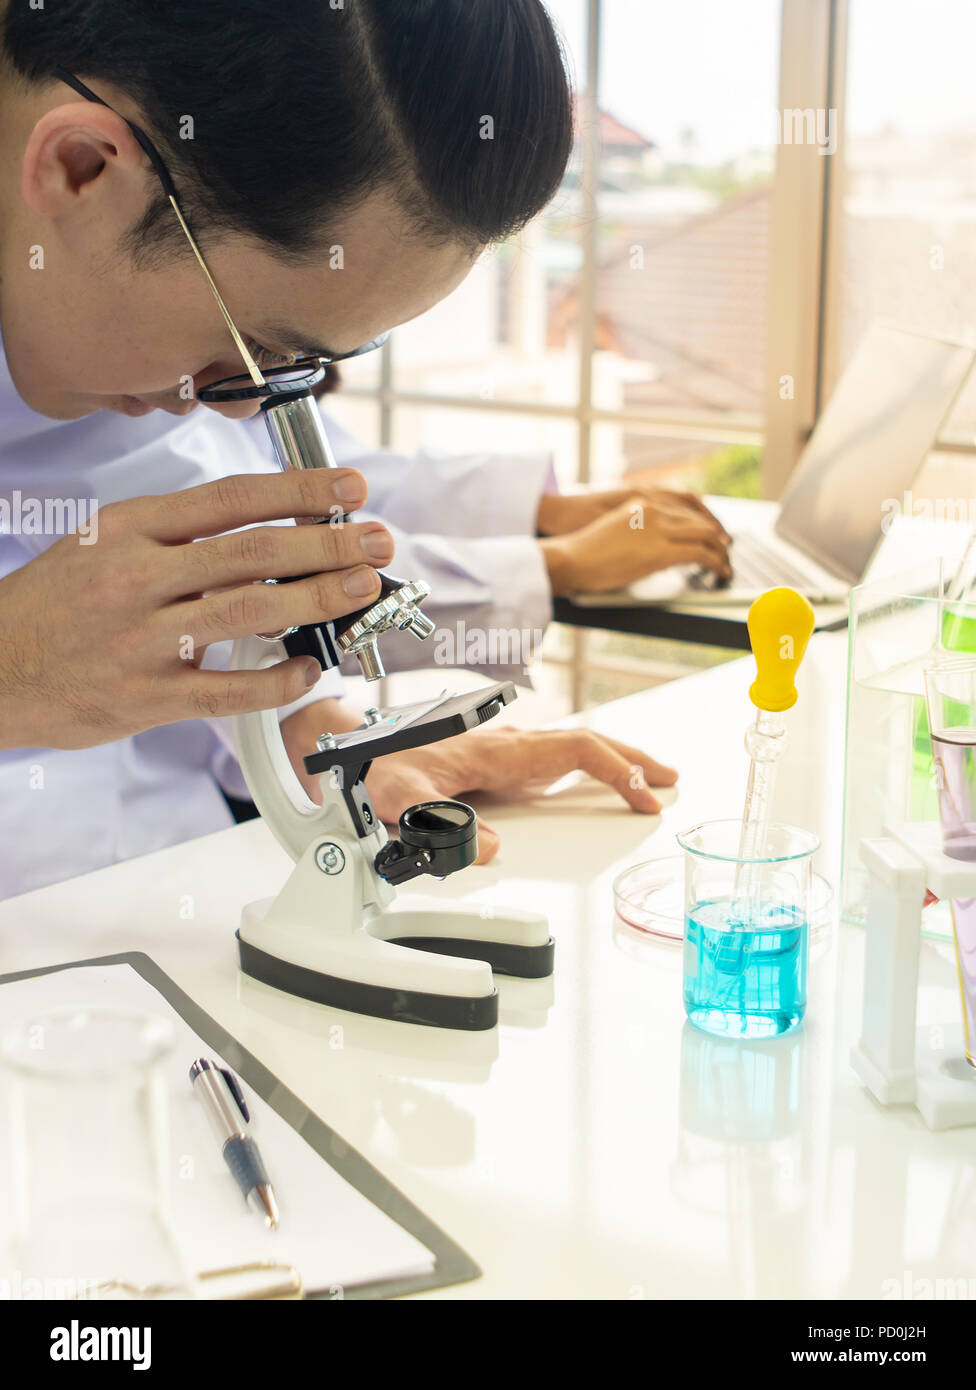 Asian male scientist,wearing eyeglass, analysing something through a microscope in a laboratory with female assistant working with computer in backgro - Stock Image